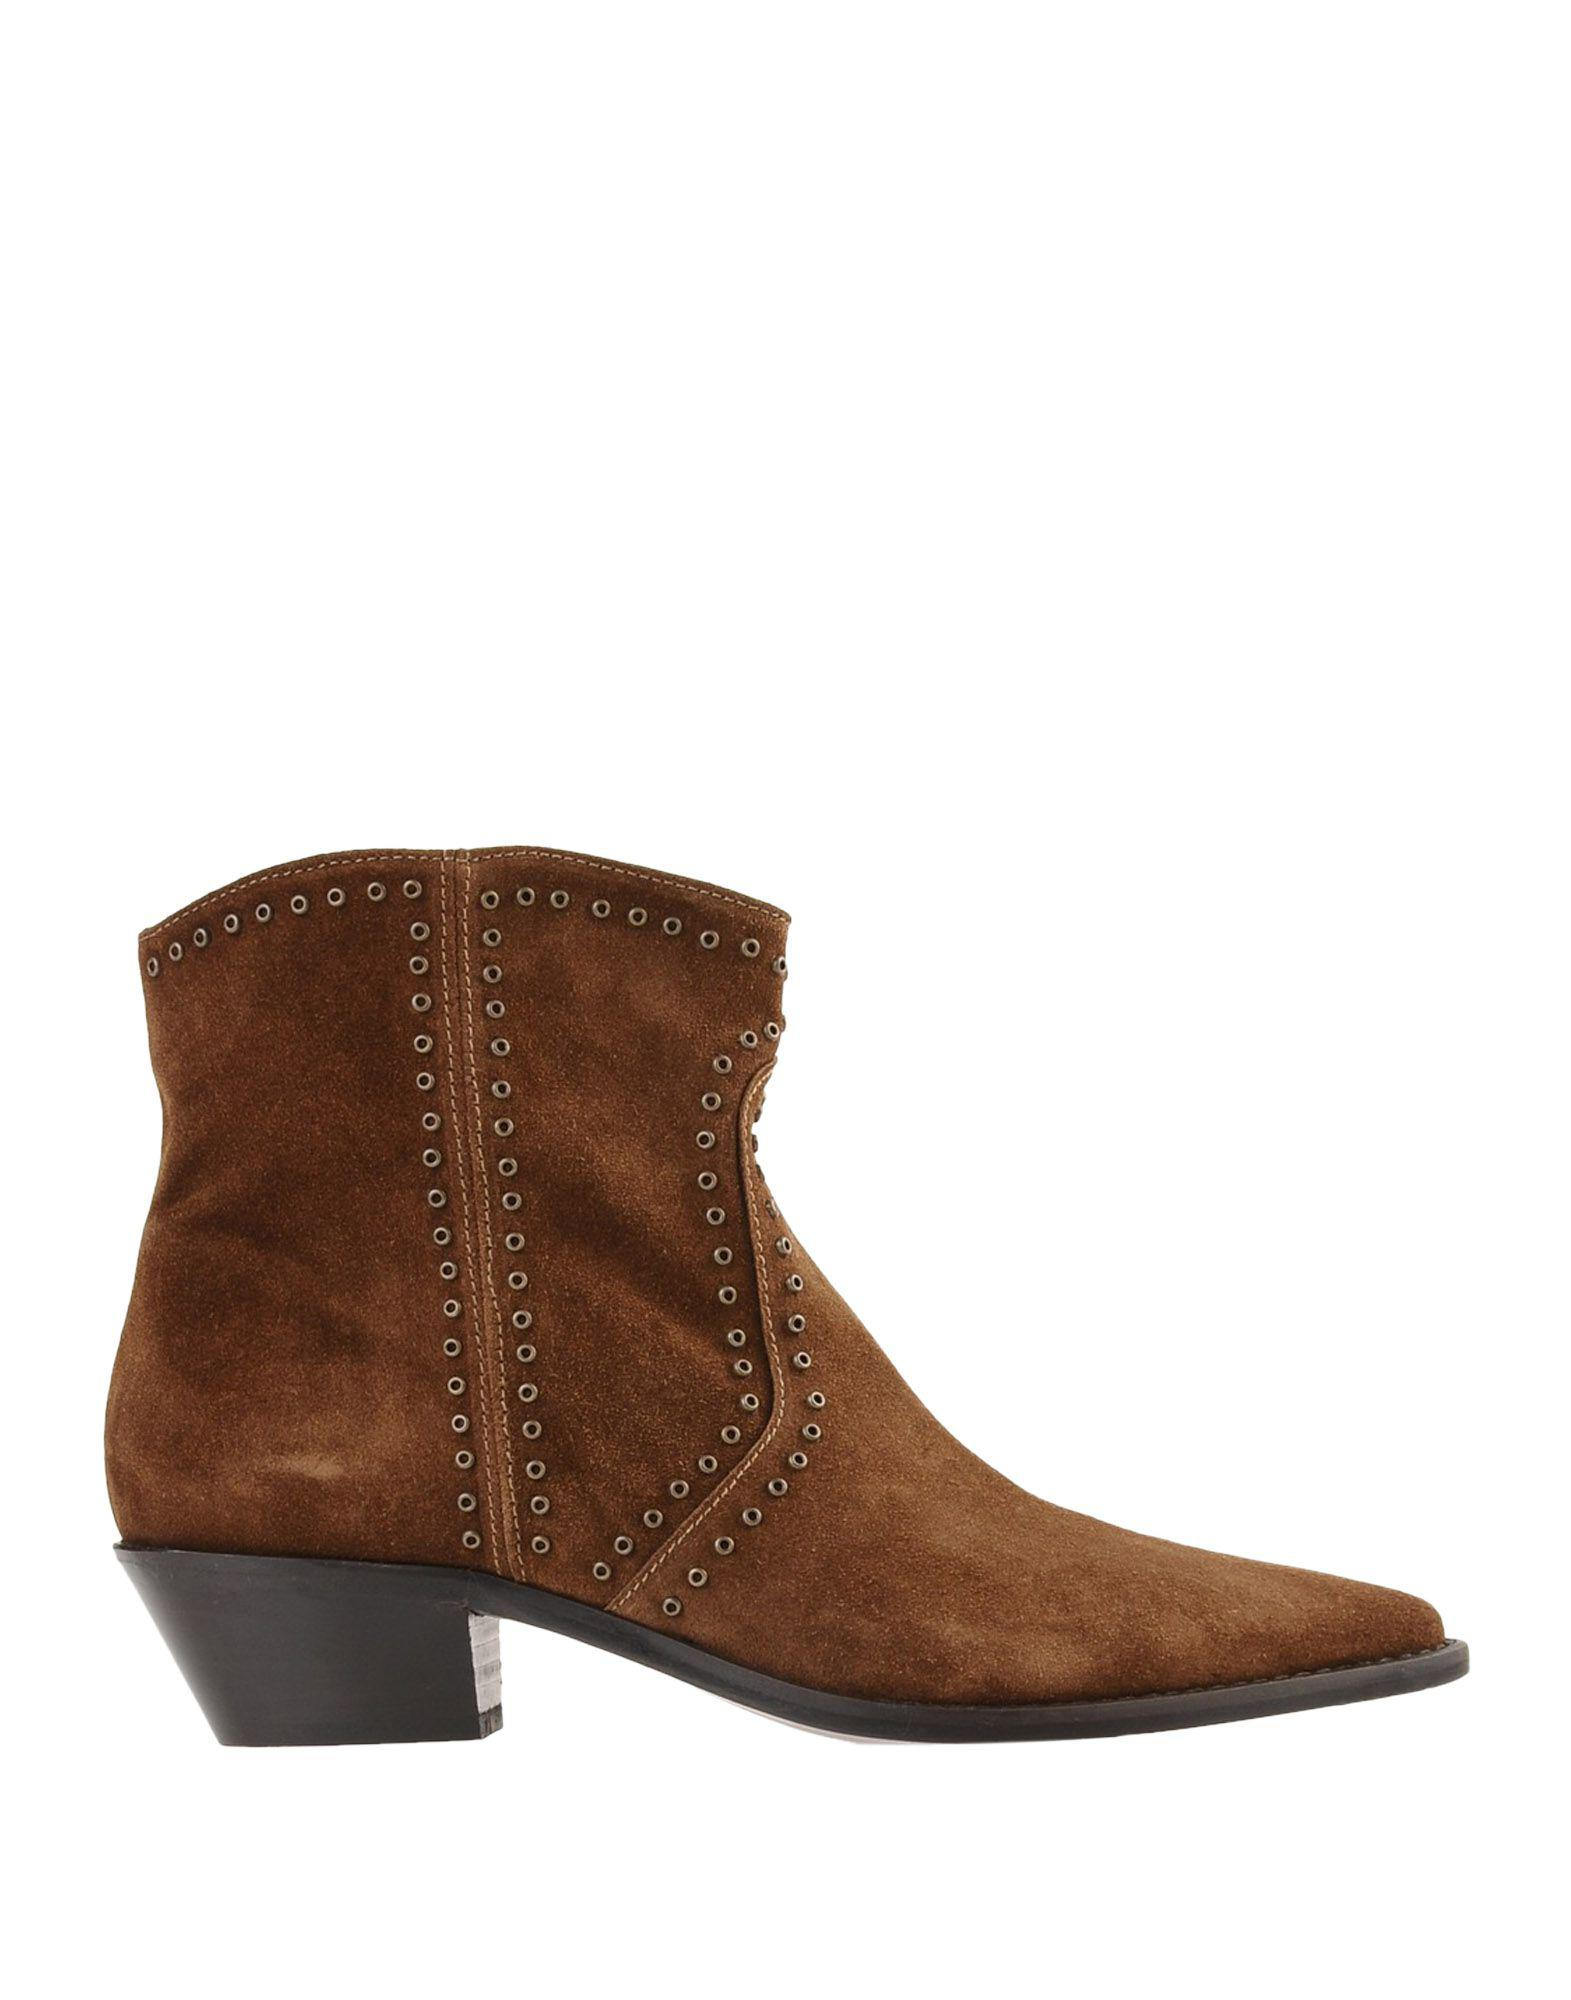 4a68d88b2aa5 Lemarè - Brown Ankle Boots - Lyst. View fullscreen